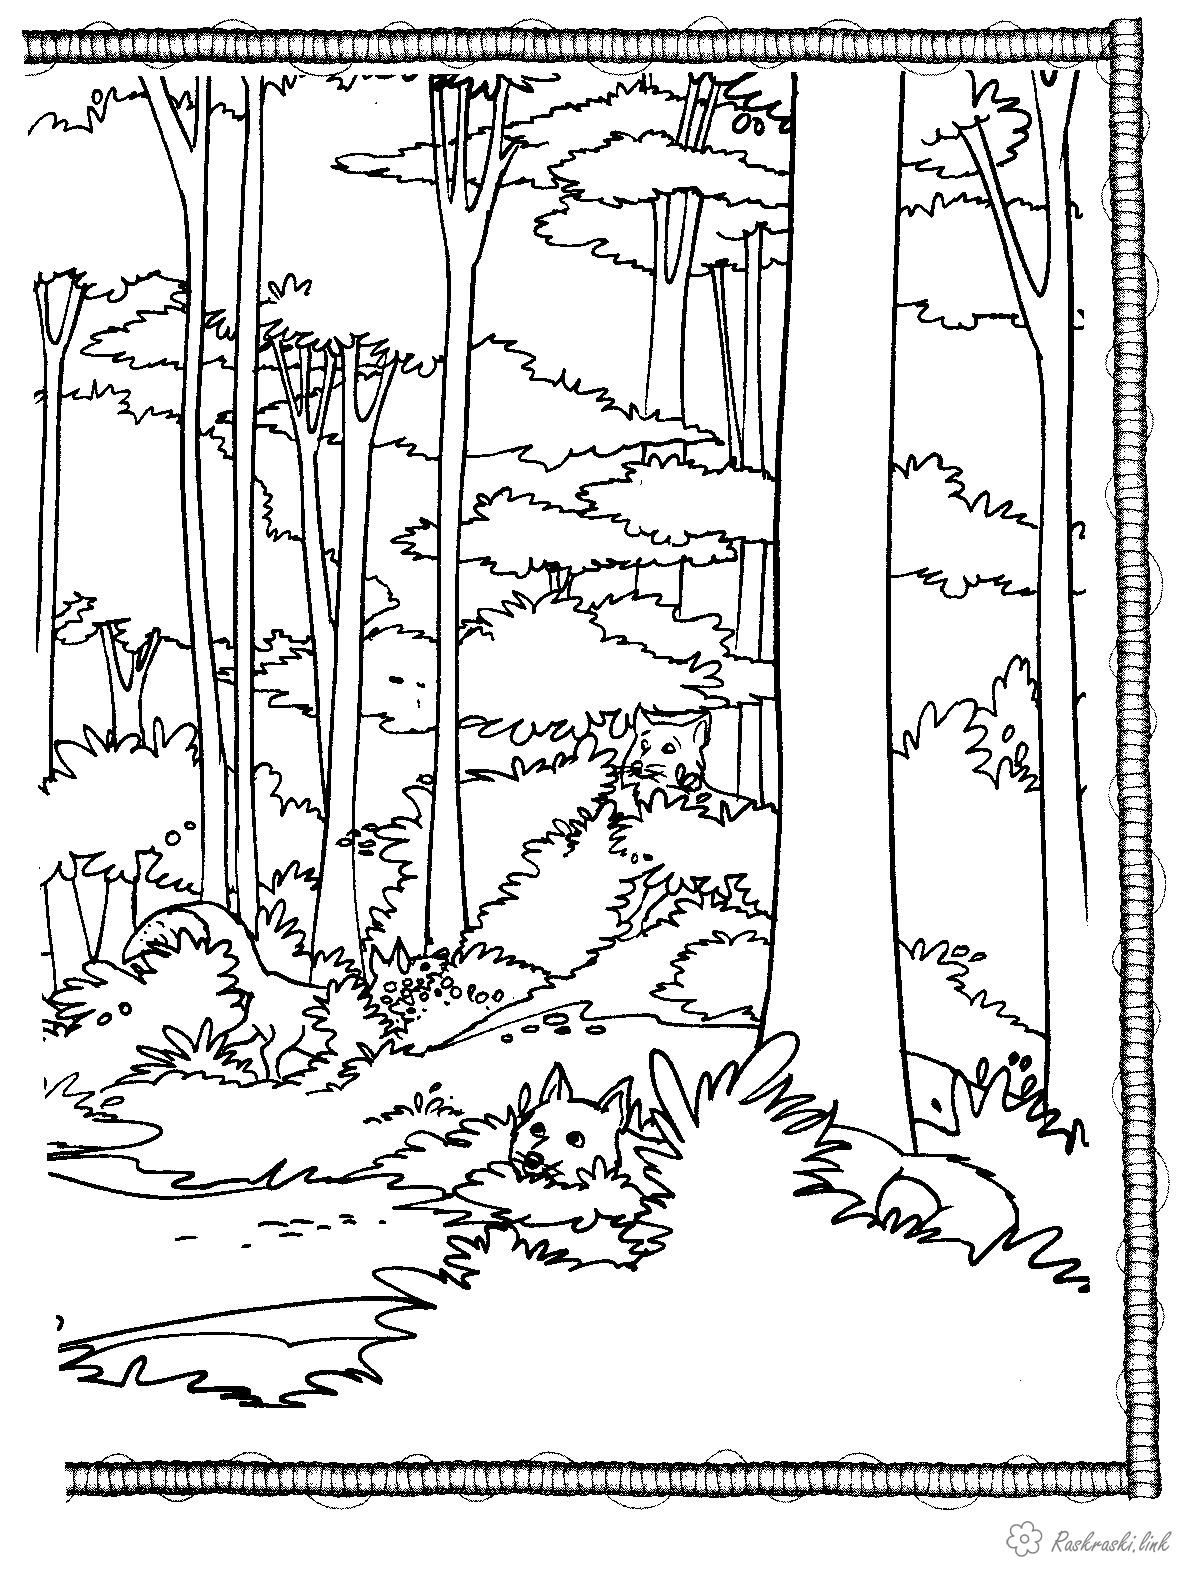 Coloring Forest animals coloring pages animals, nature, wild animals, forest, fox, foxes, trees, chanterelles hidden, complex painted, frame, print coloring pages pages